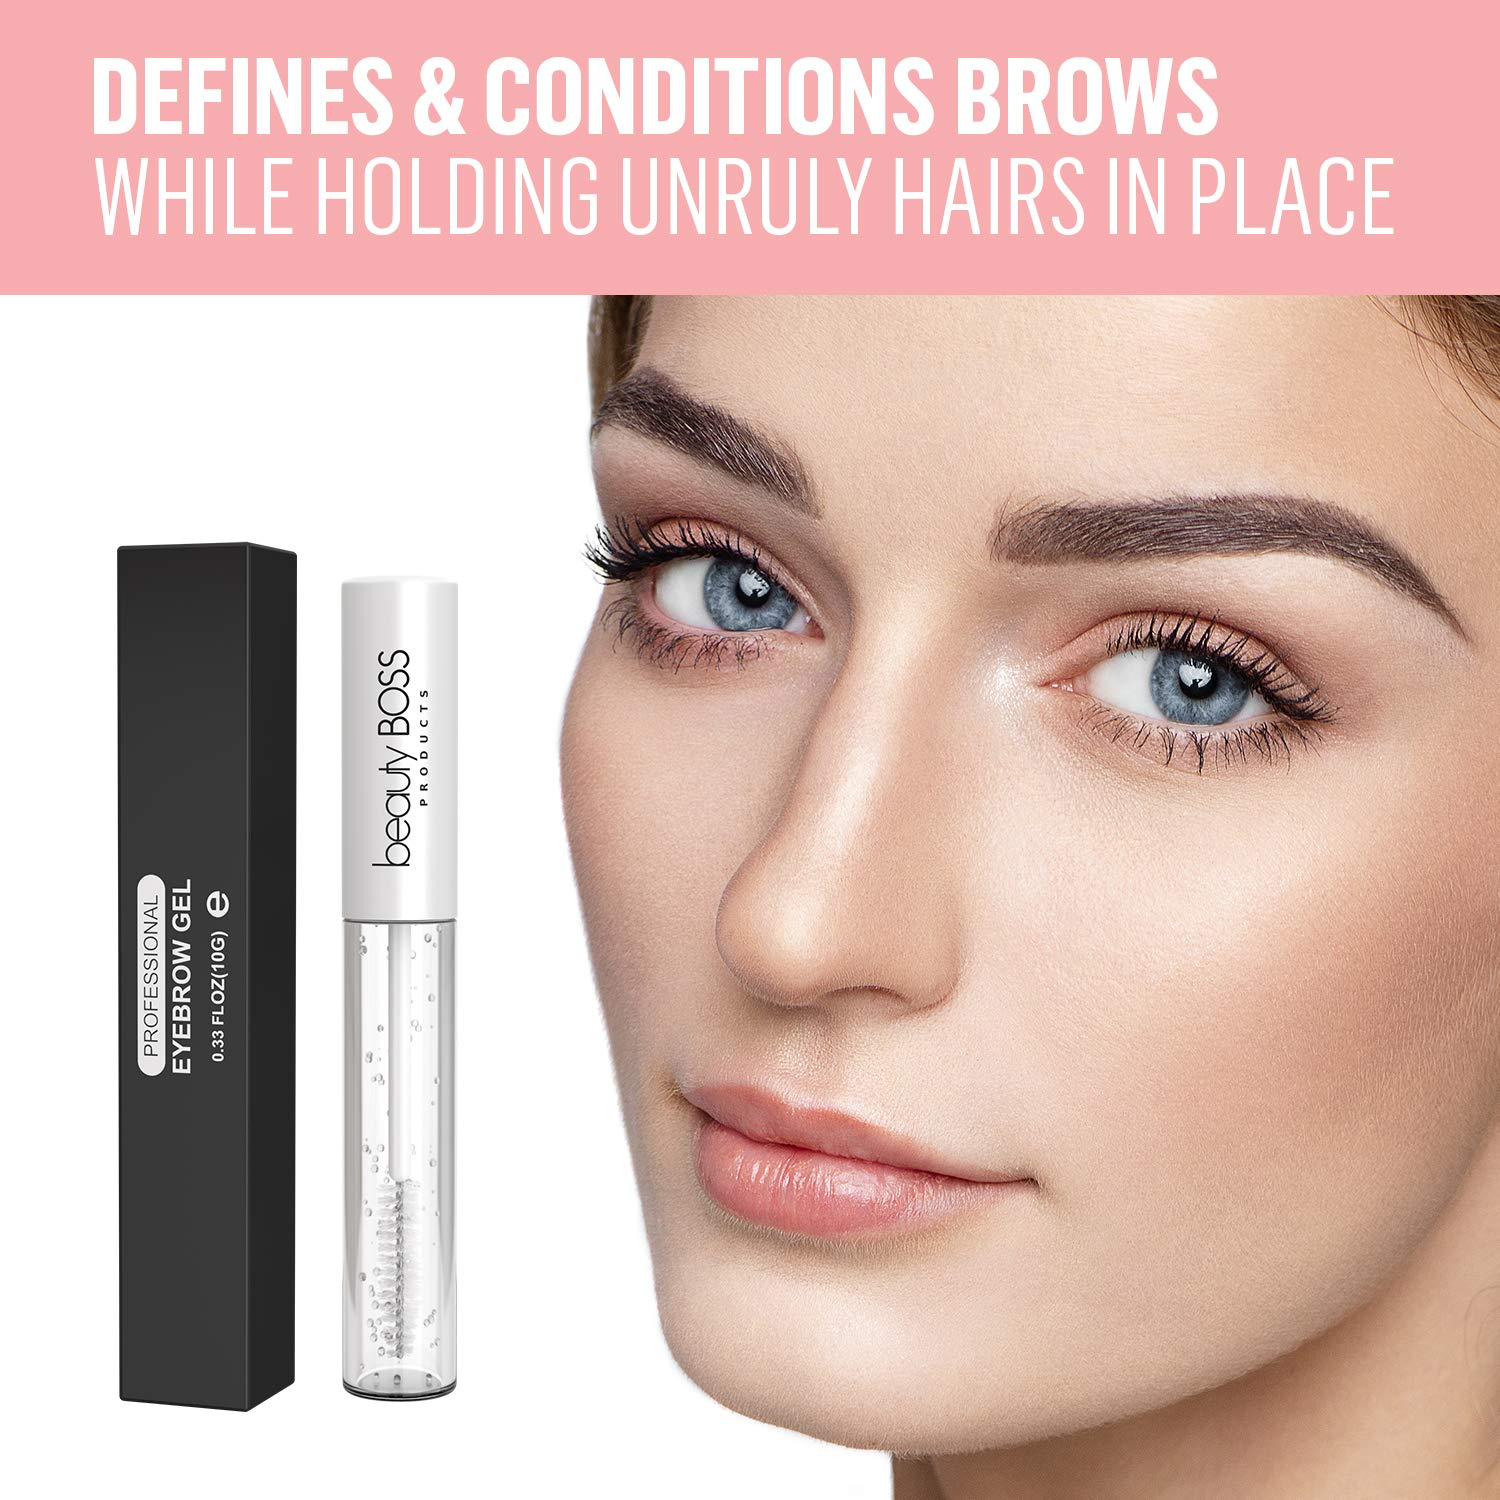 7bb2cbdba8c Amazon.com : Clear Eyebrow Gel Brow Mascara - Sculpting Clear Gel for  Glossier Brows - Natural Liquid Browgel Made in USA : Beauty